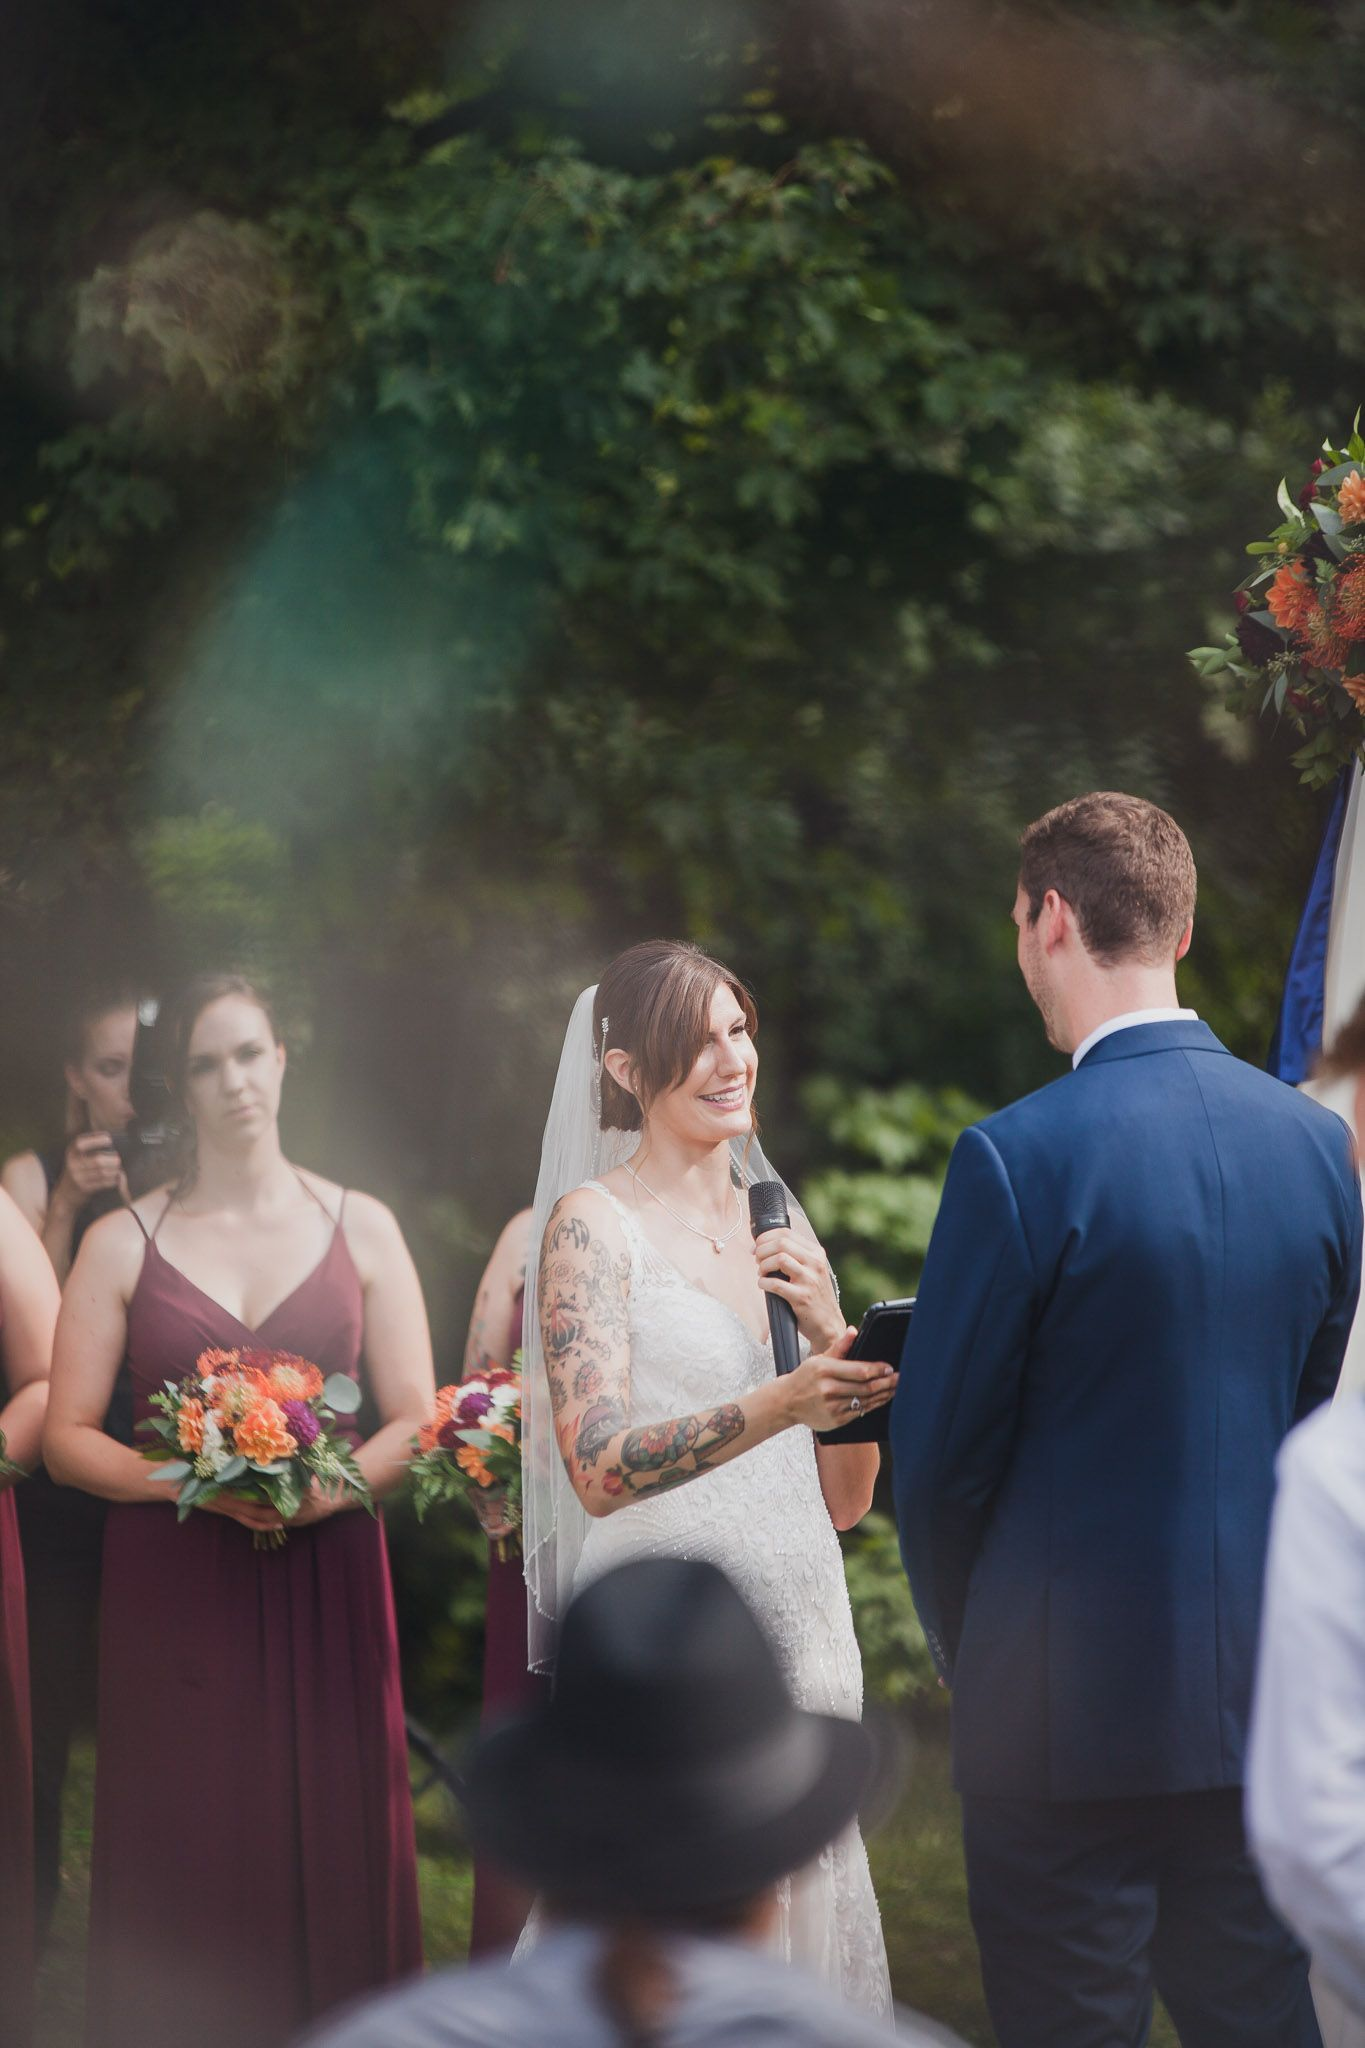 Find Your Dream Wedding Photographer Download This